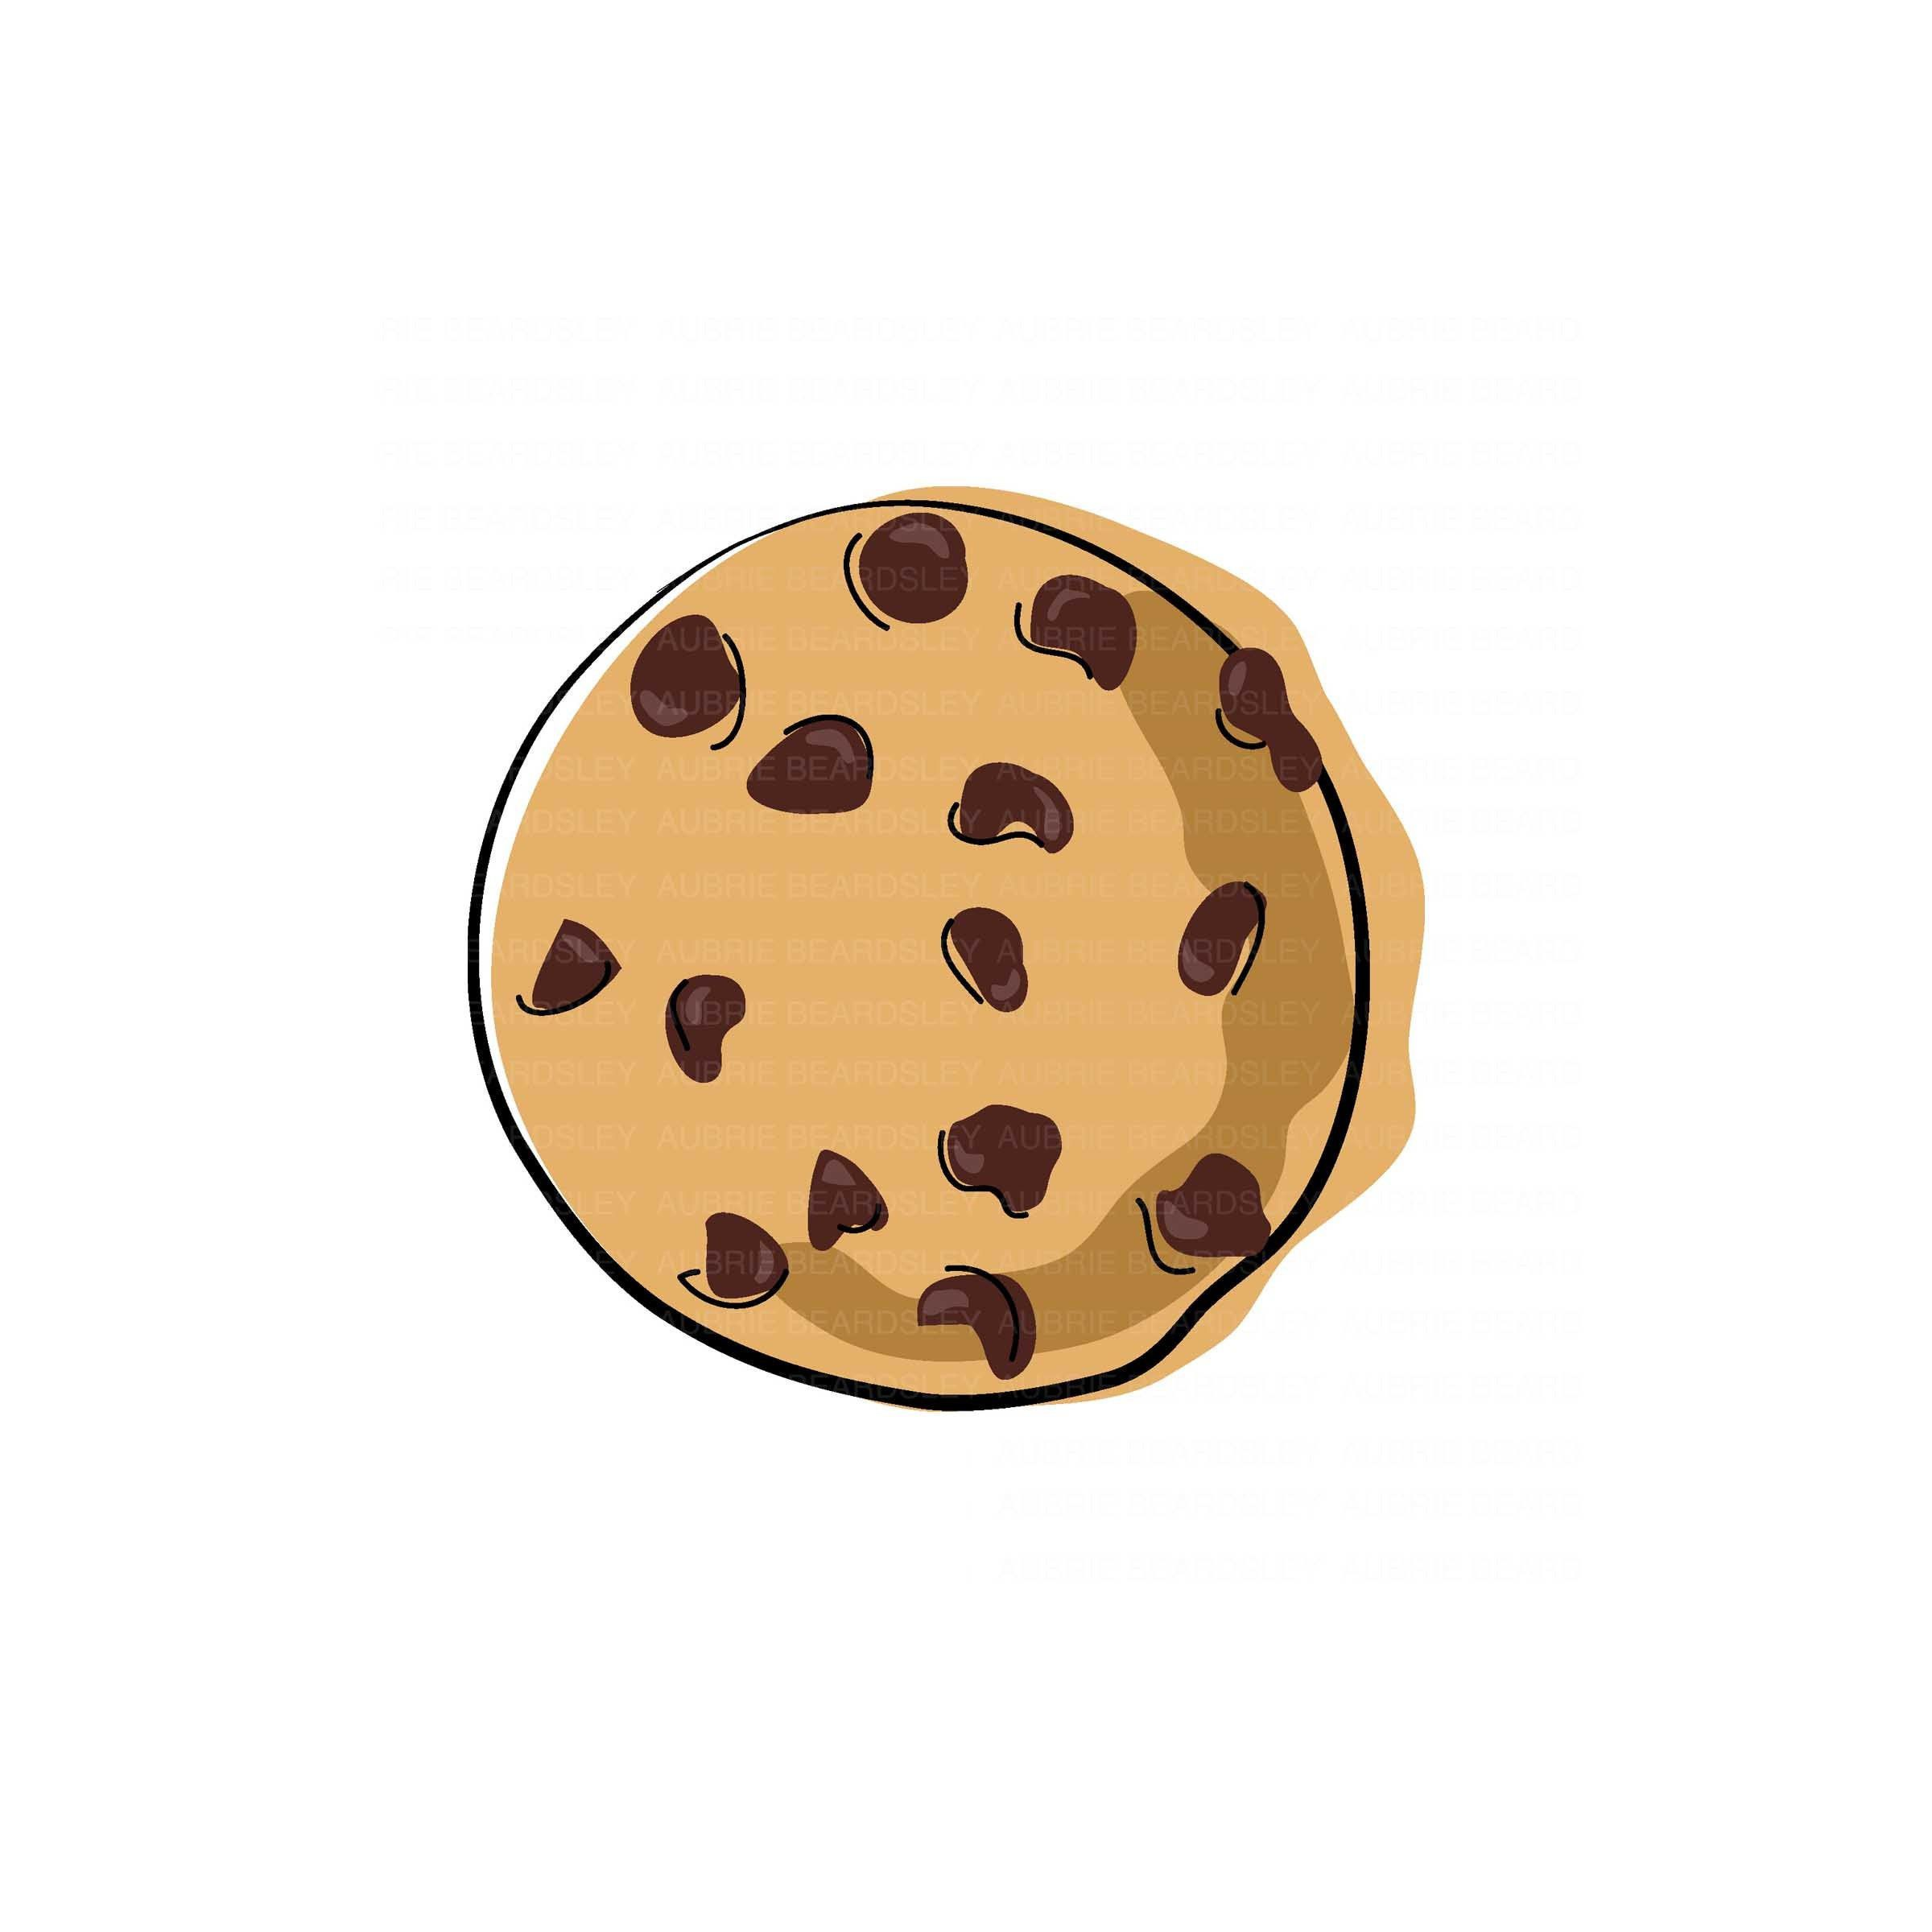 New Item From My Etsy Shop Png Jpeg Svg Instant Digital Download Chocolate Chip Cookie Great For Diy Projec Cookie Clipart Cookies Branding Cookie Drawing